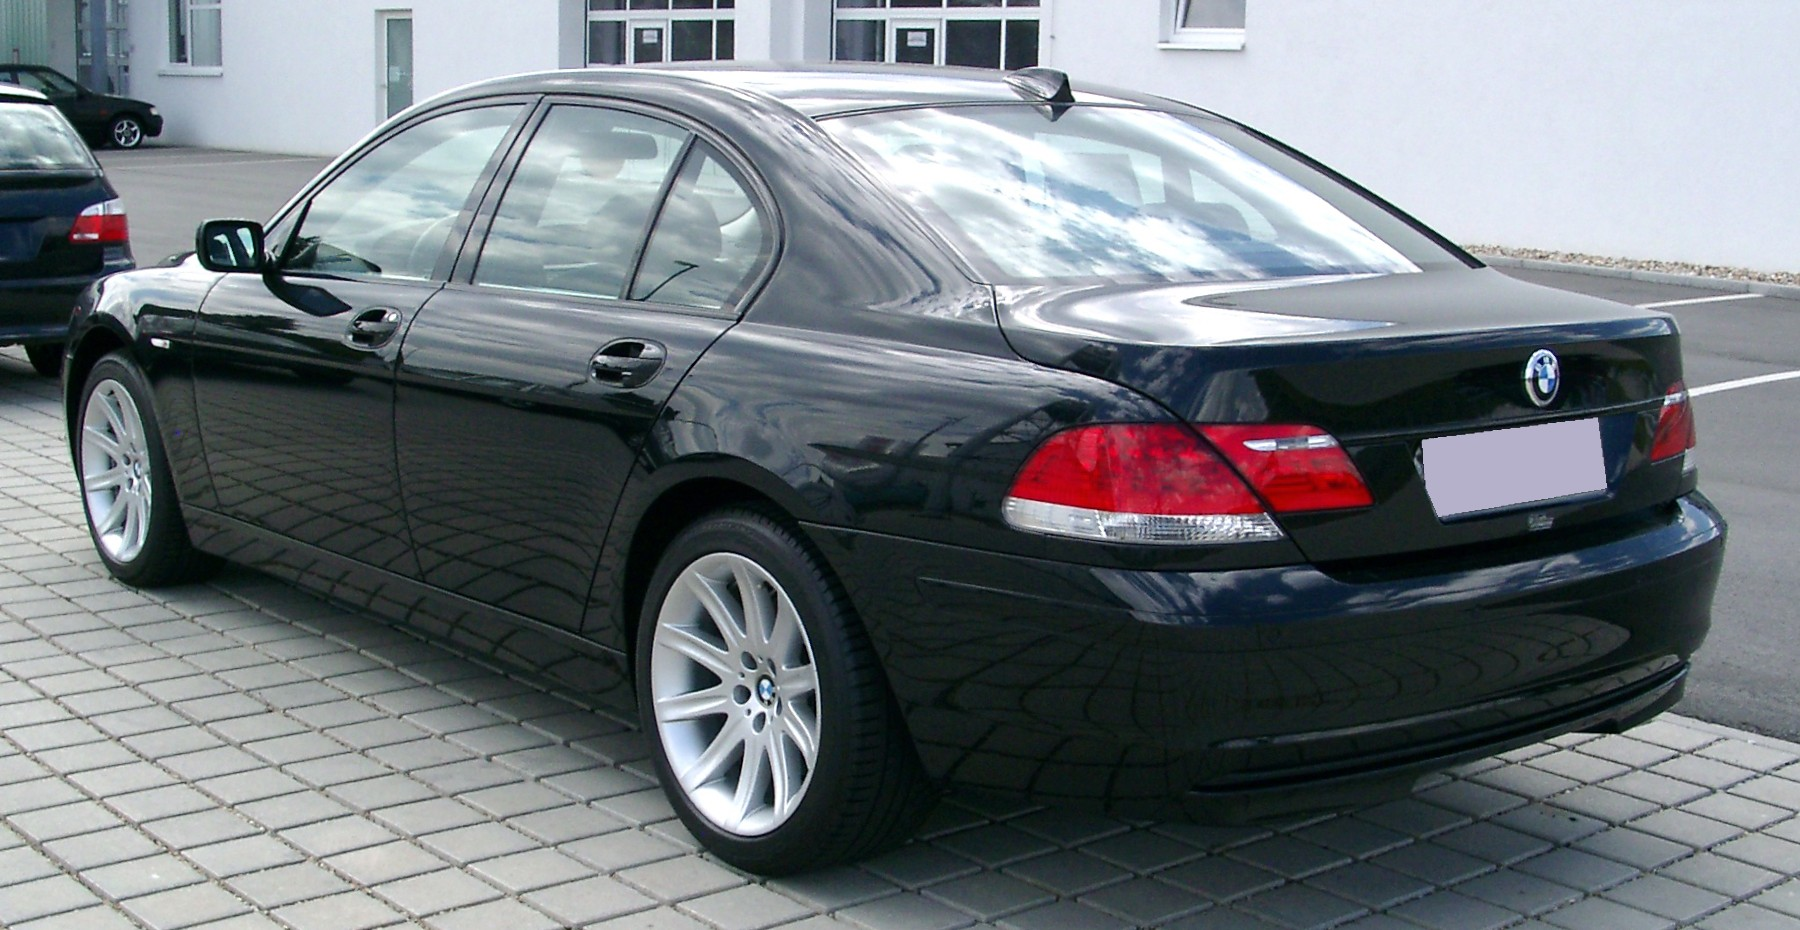 BMW 7 Series 2009 Exterior Rear Side View